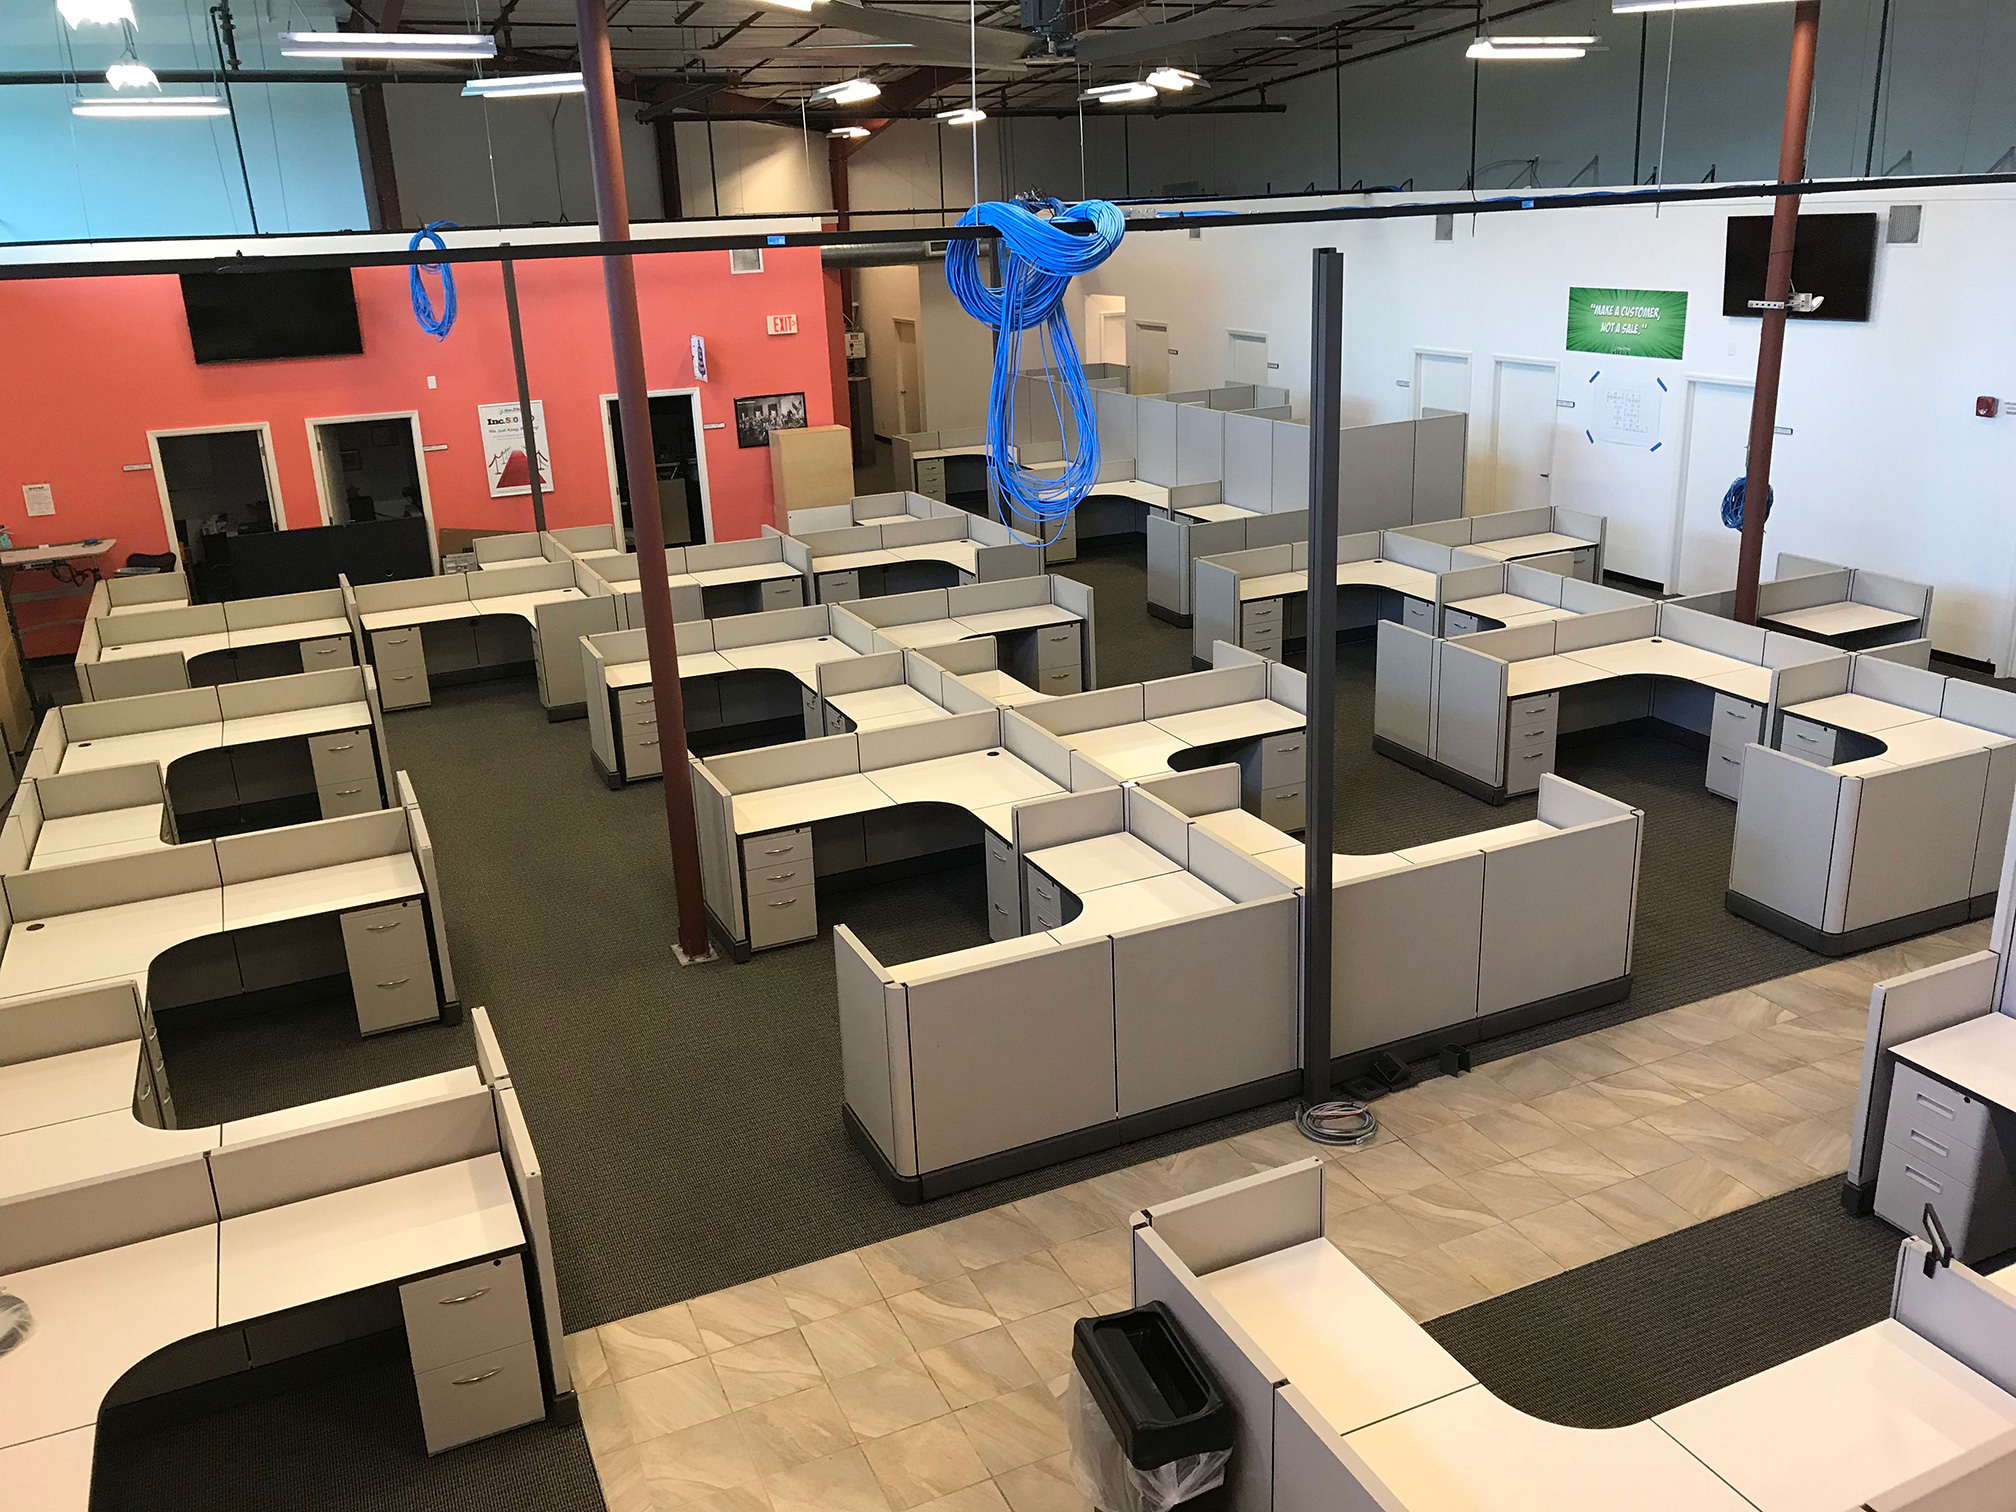 office-cubicles-for-sale-in-oakland-park-florida-3.jpg